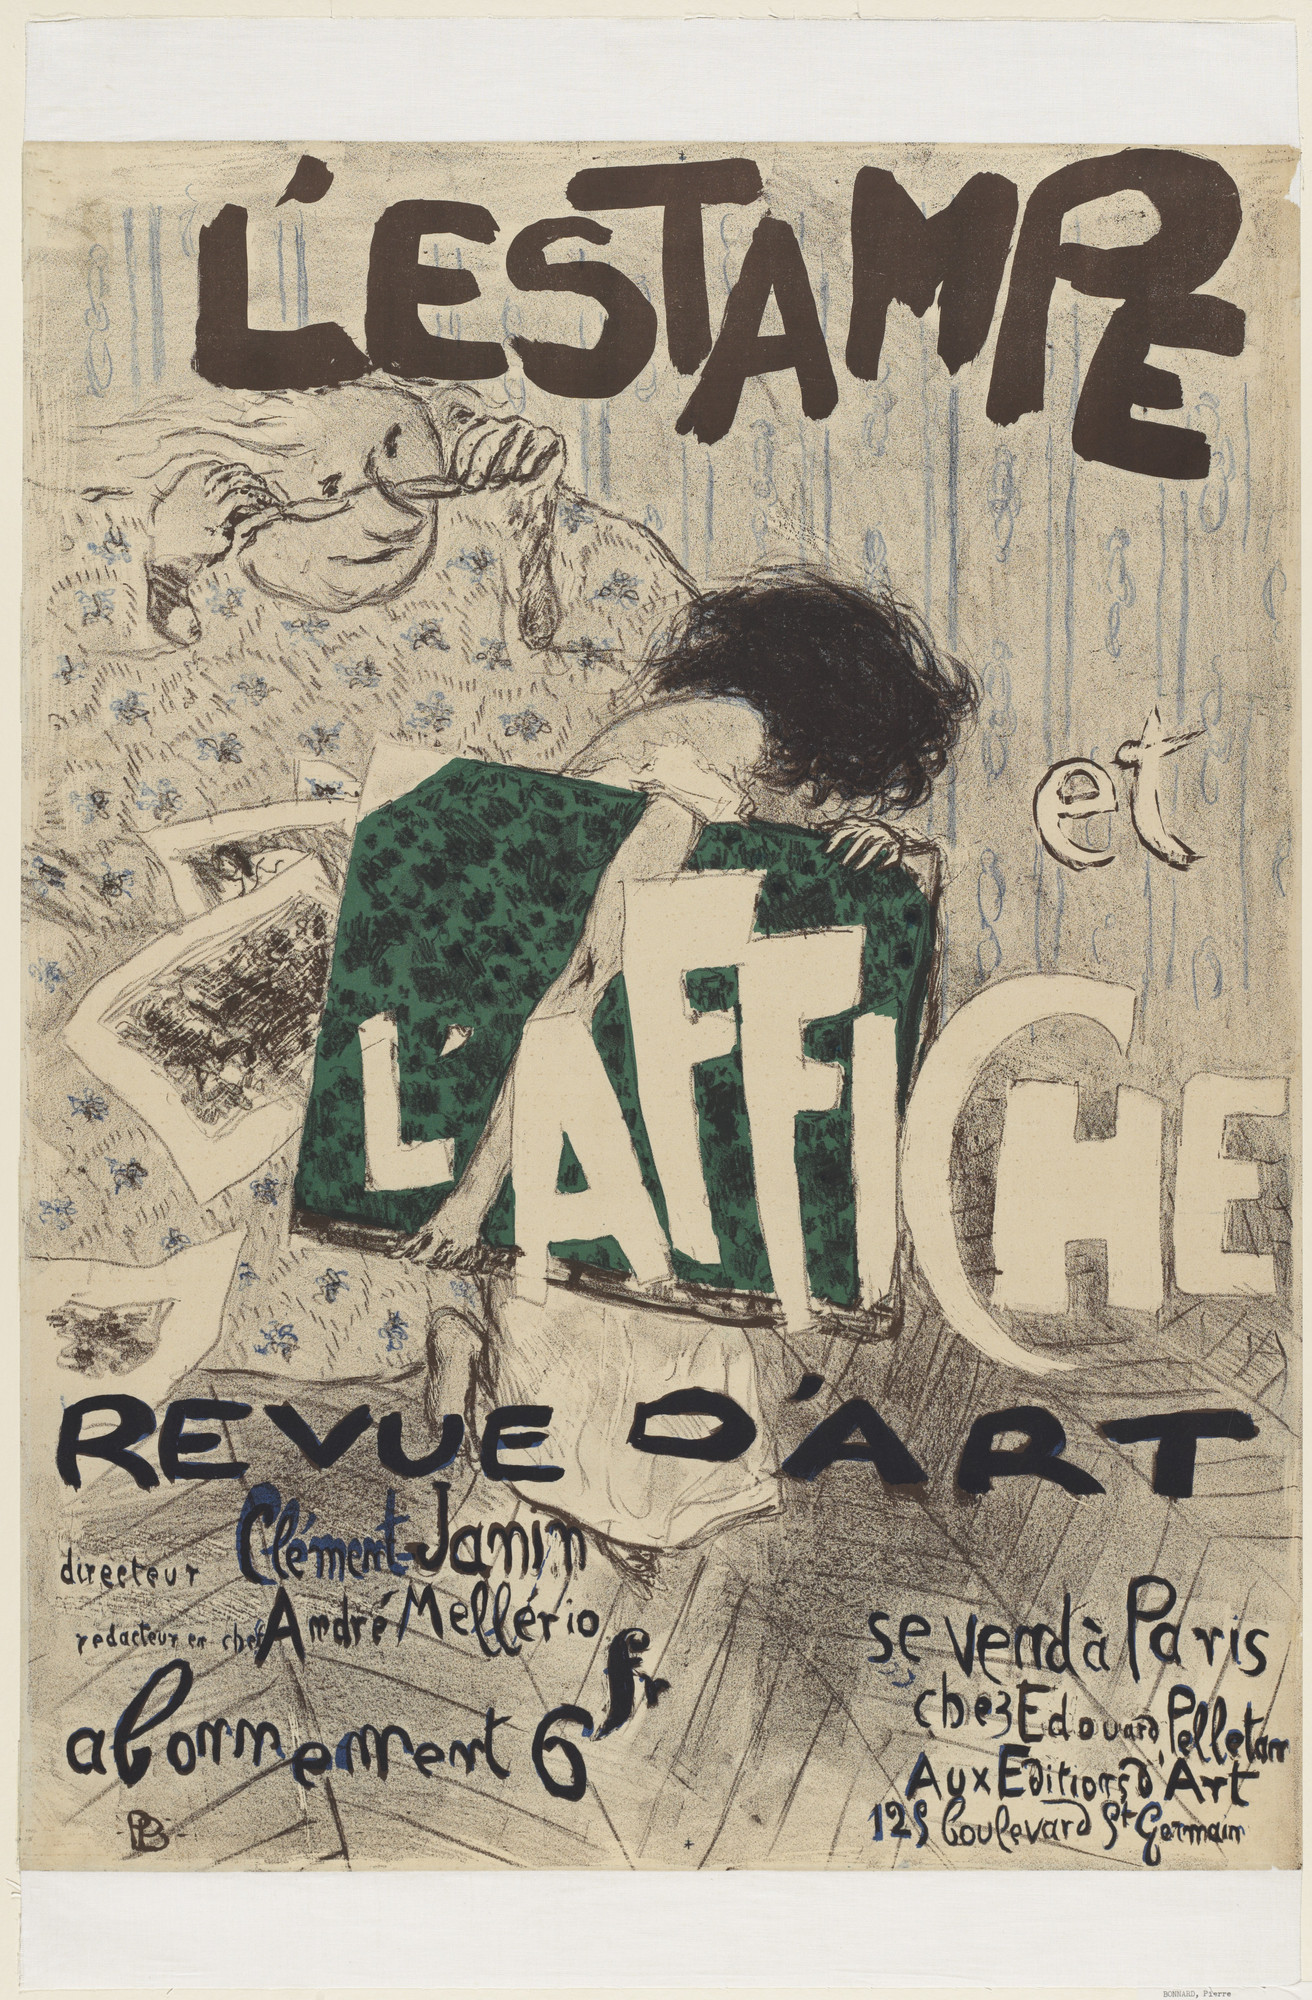 Pierre Bonnard. The Print and the Poster (L'Estampe et l'affiche). 1897